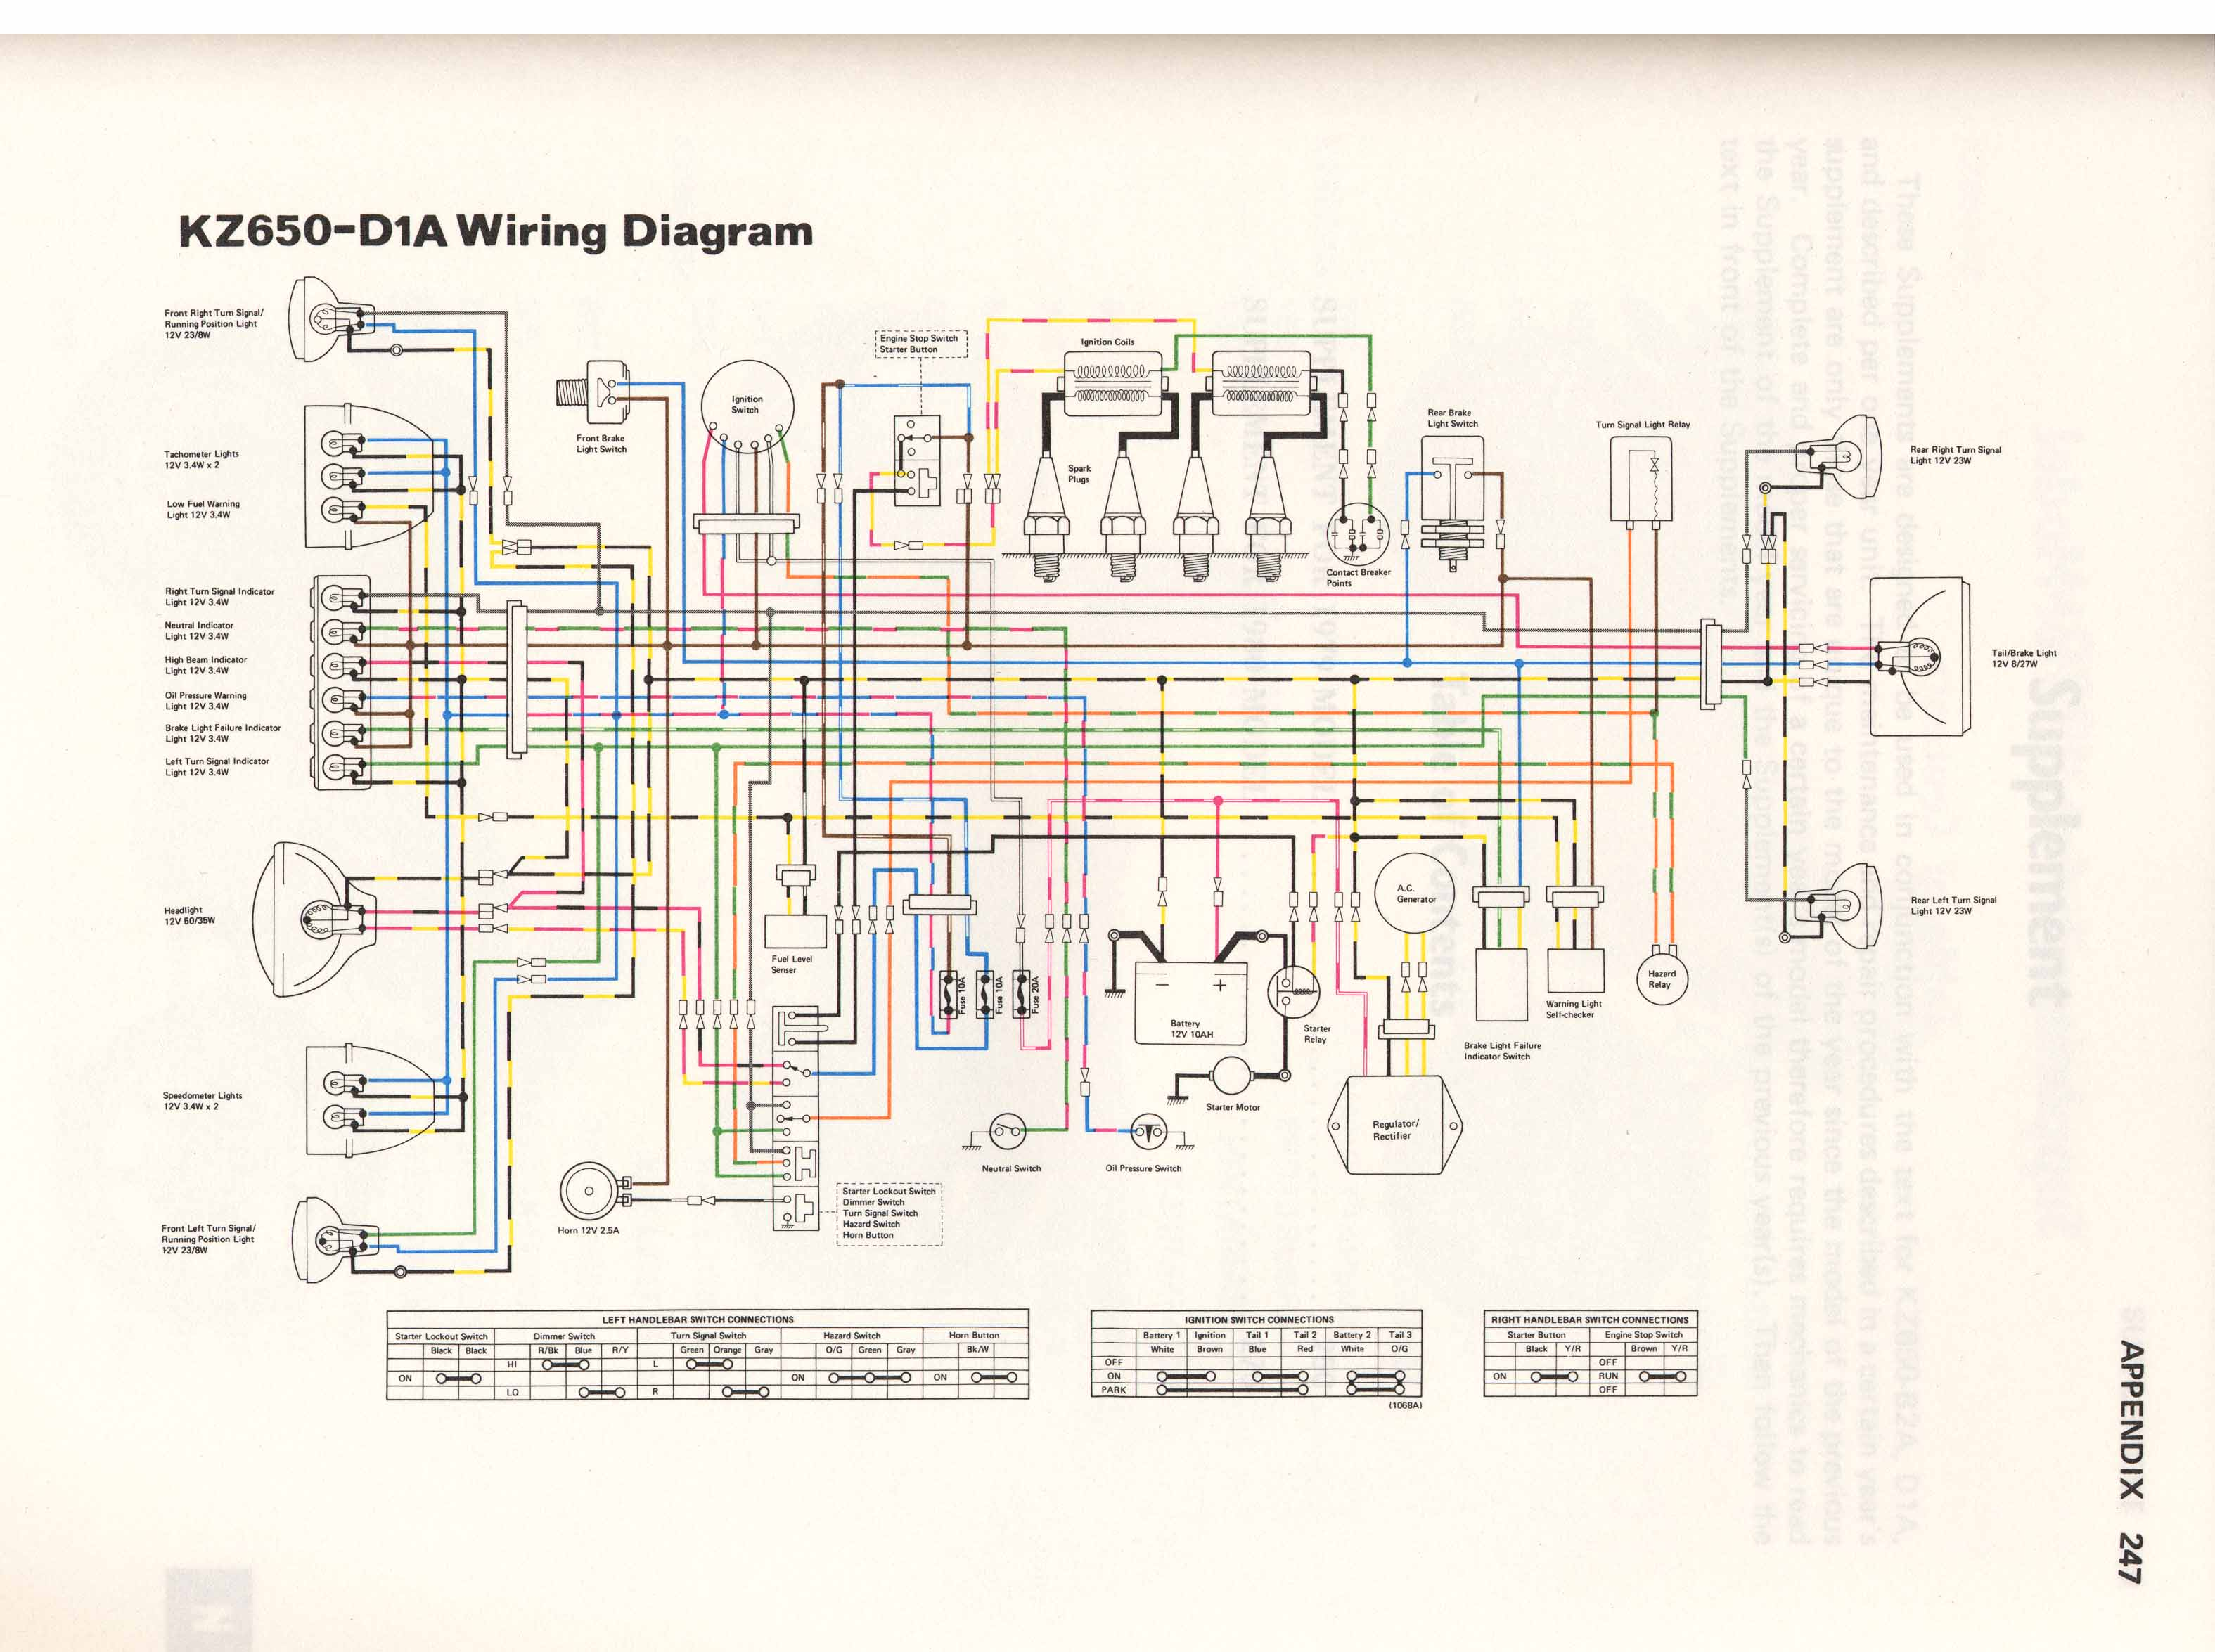 77 kz650 wiring diagram kz650.info - wiring diagrams kawasaki kz650 wiring diagram free download schematic #6